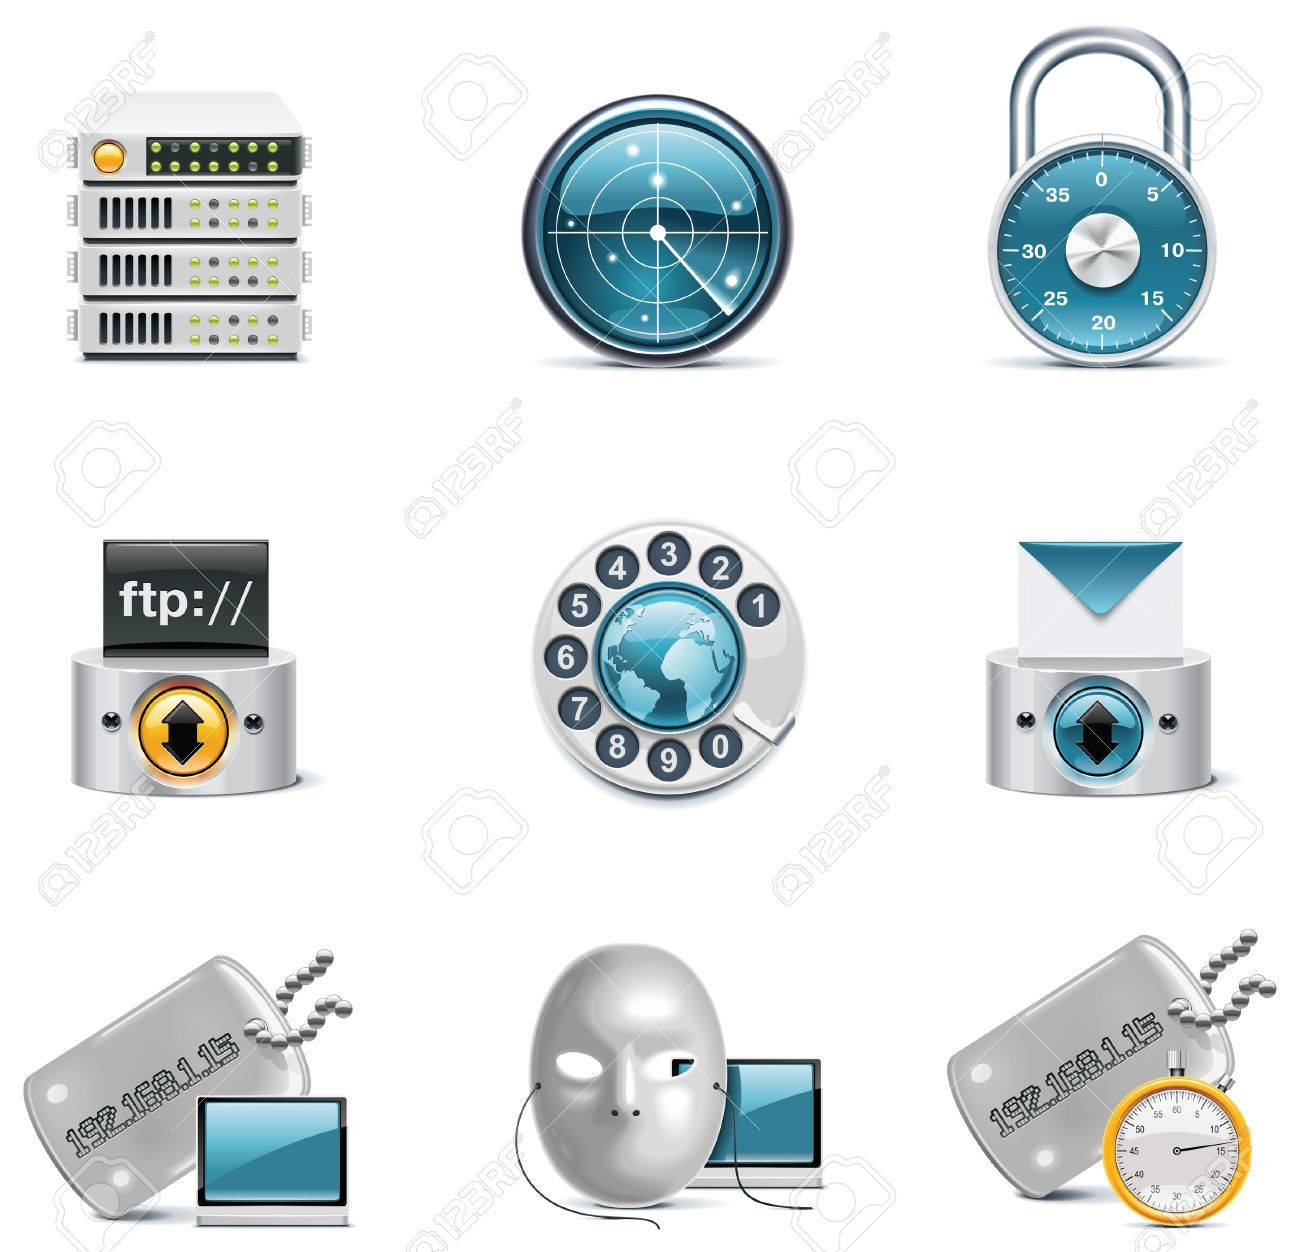 internet and network icons. Stock Vector - 8189340